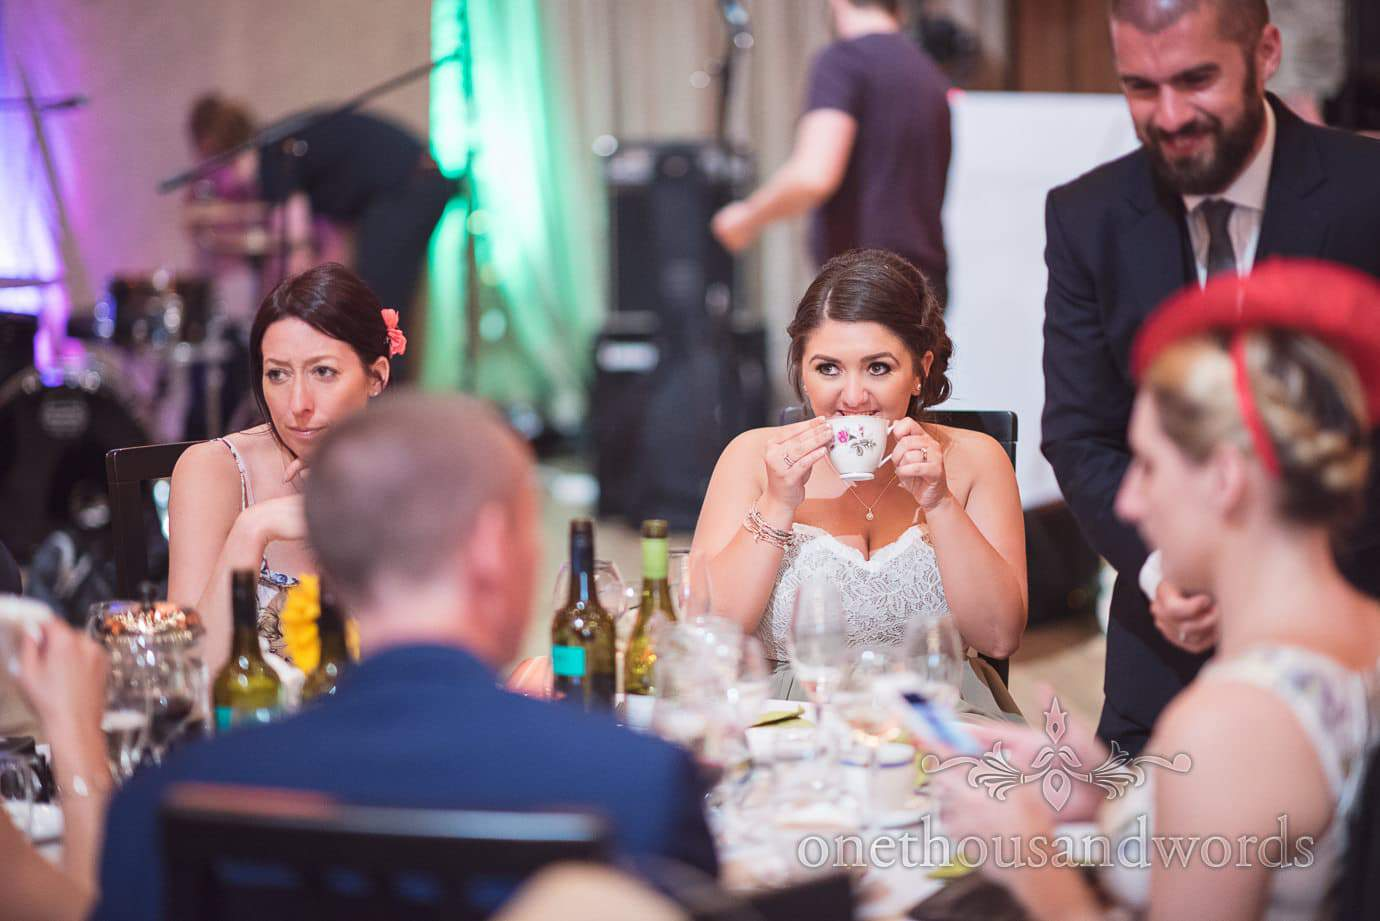 Bridesmaid drinks from a china tea cup at rustic barn wedding reception